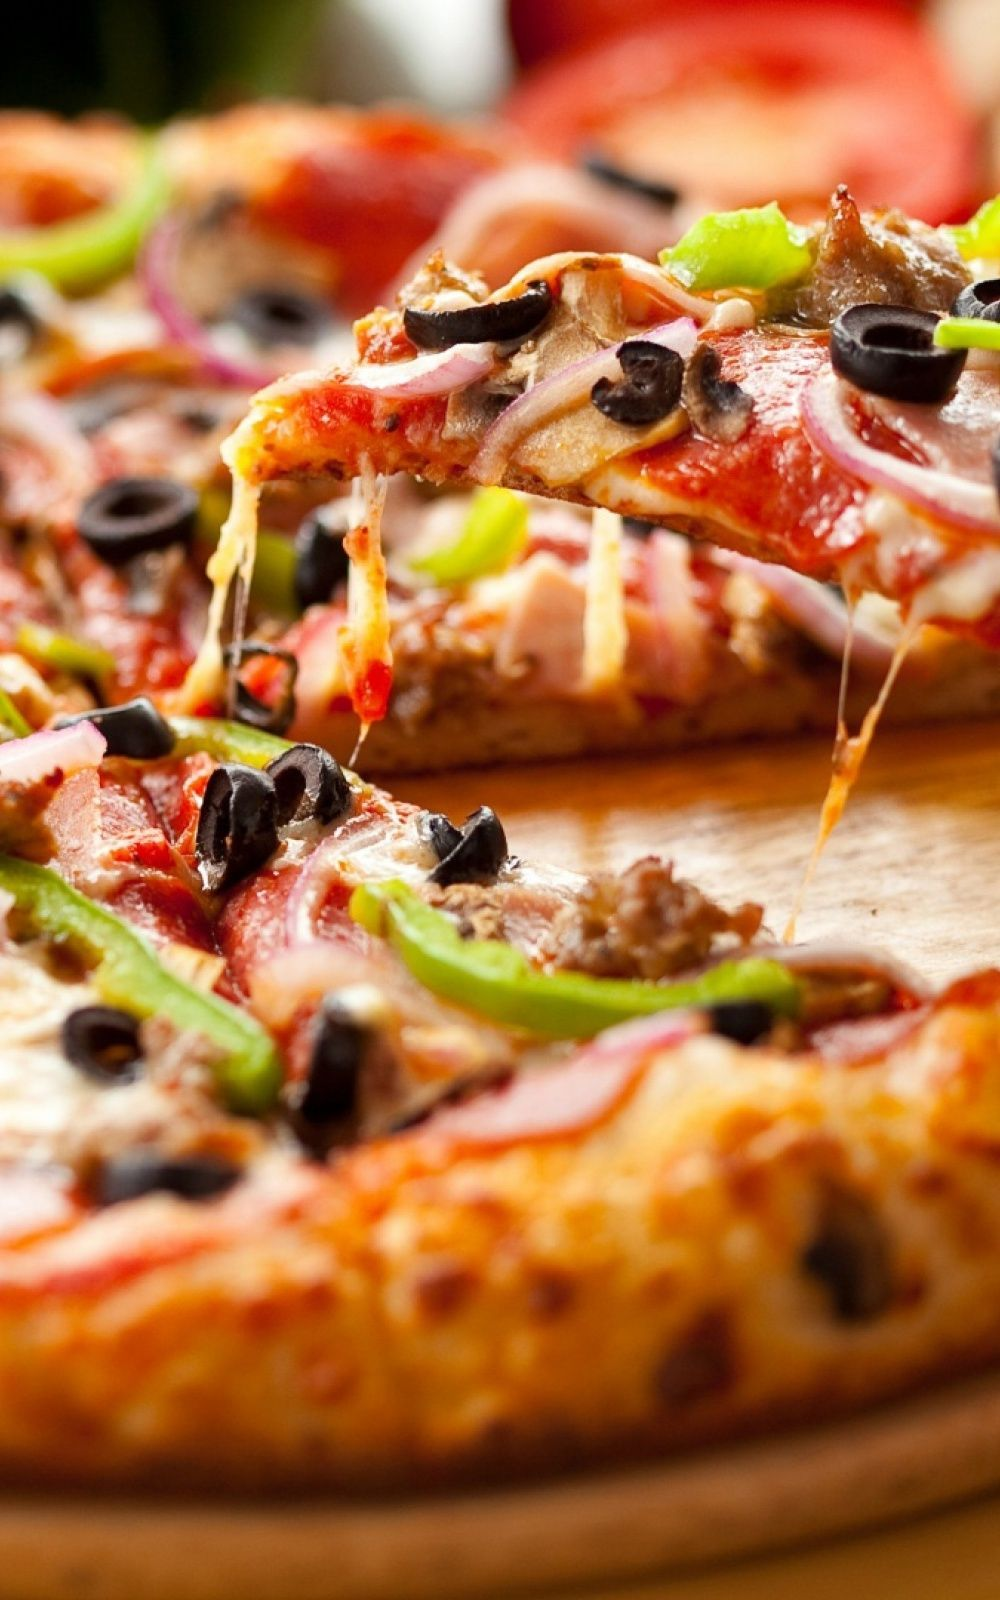 1000x1600 45+ Pizza Phone Wallpapers - Download at WallpaperBro